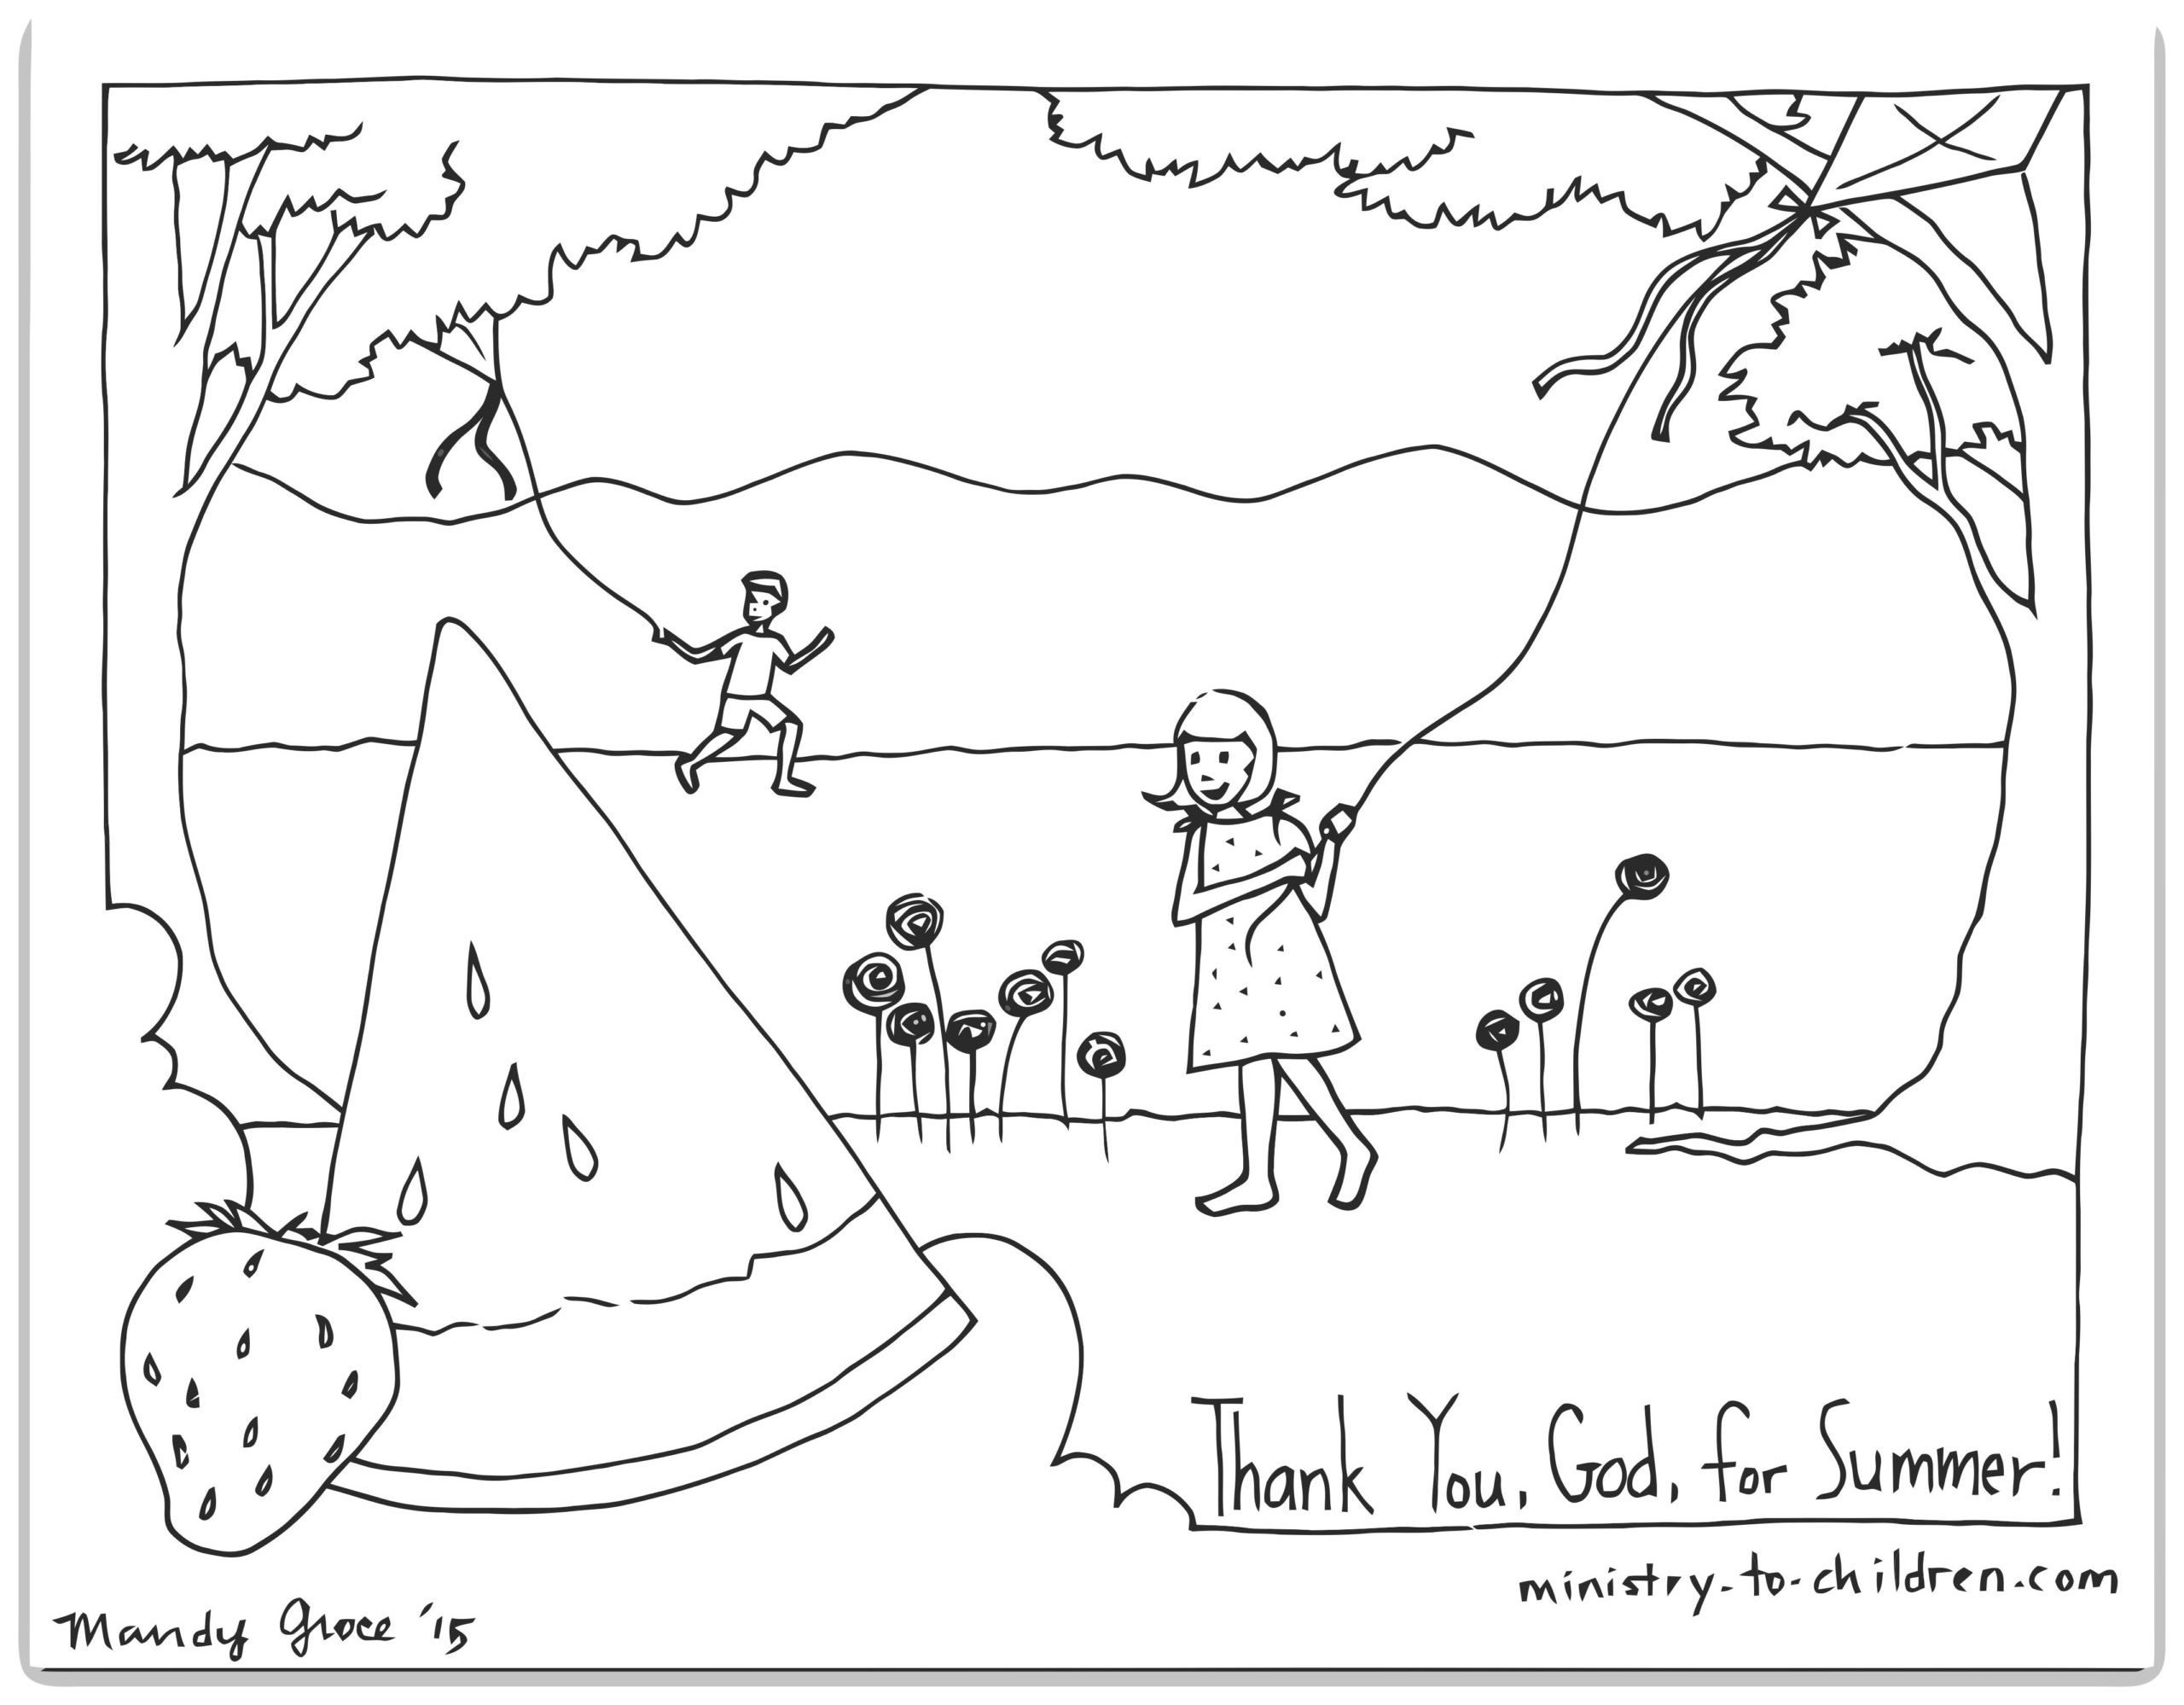 Thank You God For Summer Coloring Page Ministry To Children